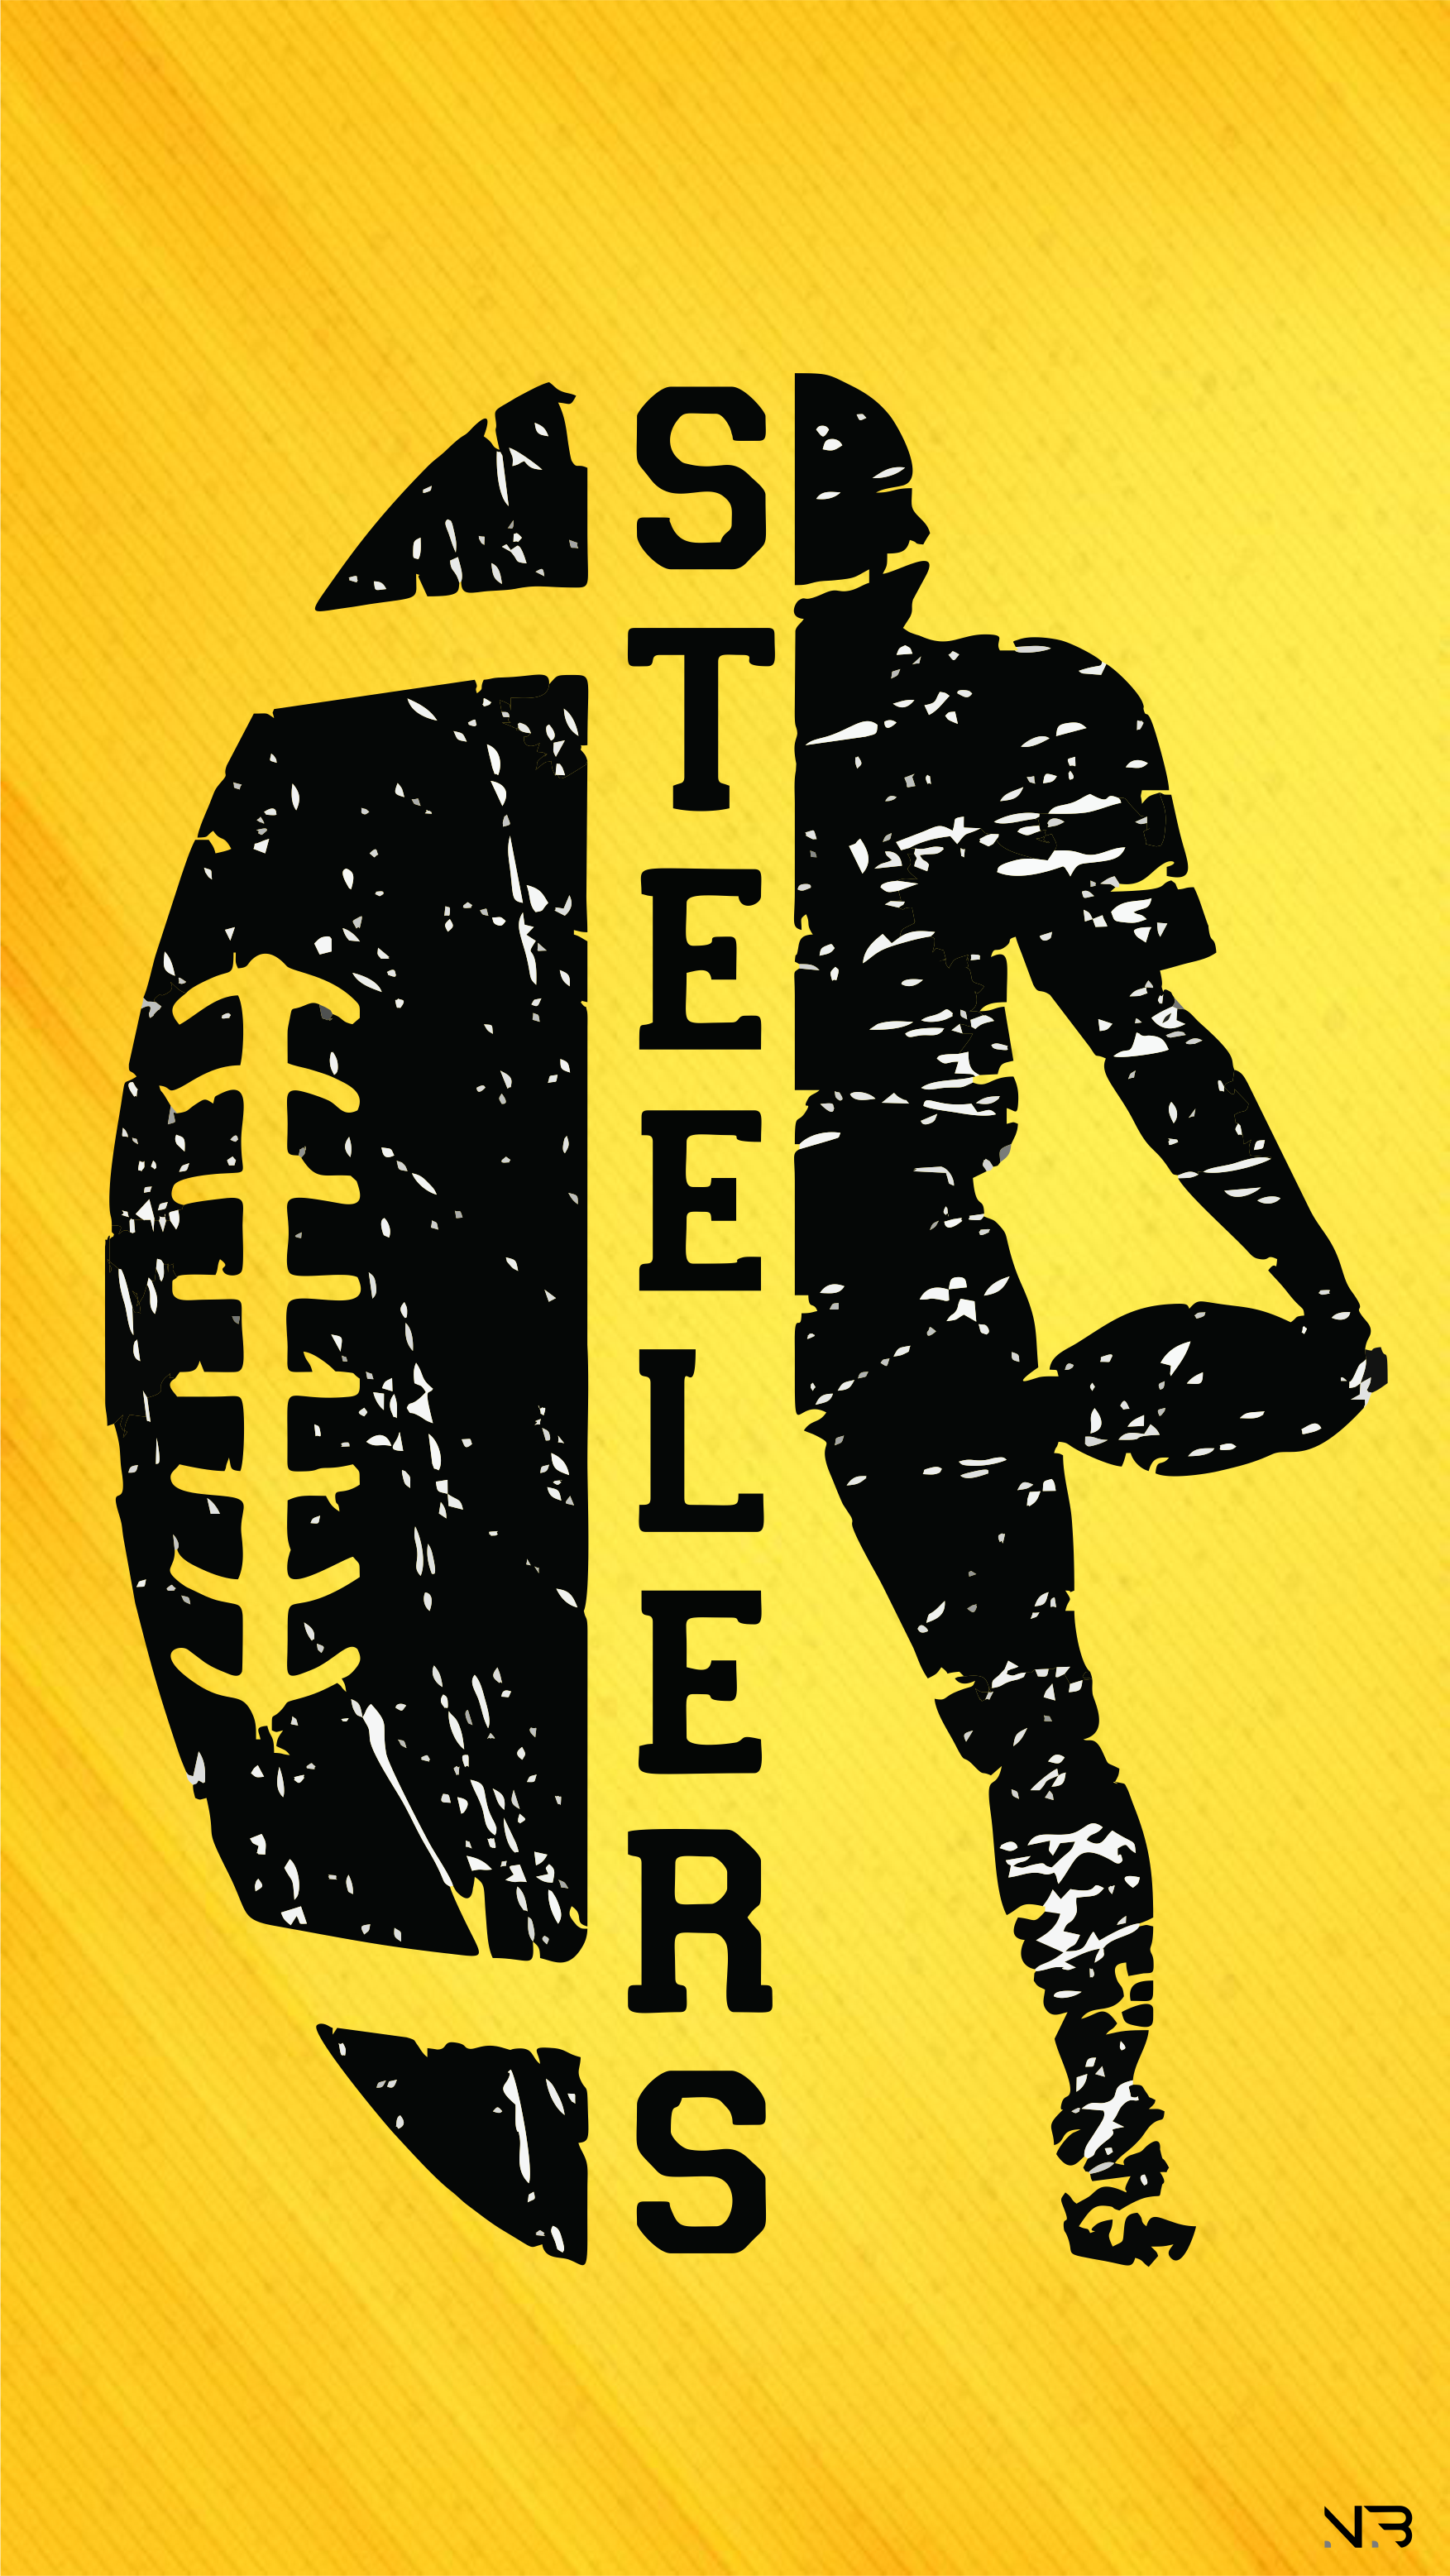 Pin by Rub09 on Steelers in 2020 Pittsburgh steelers